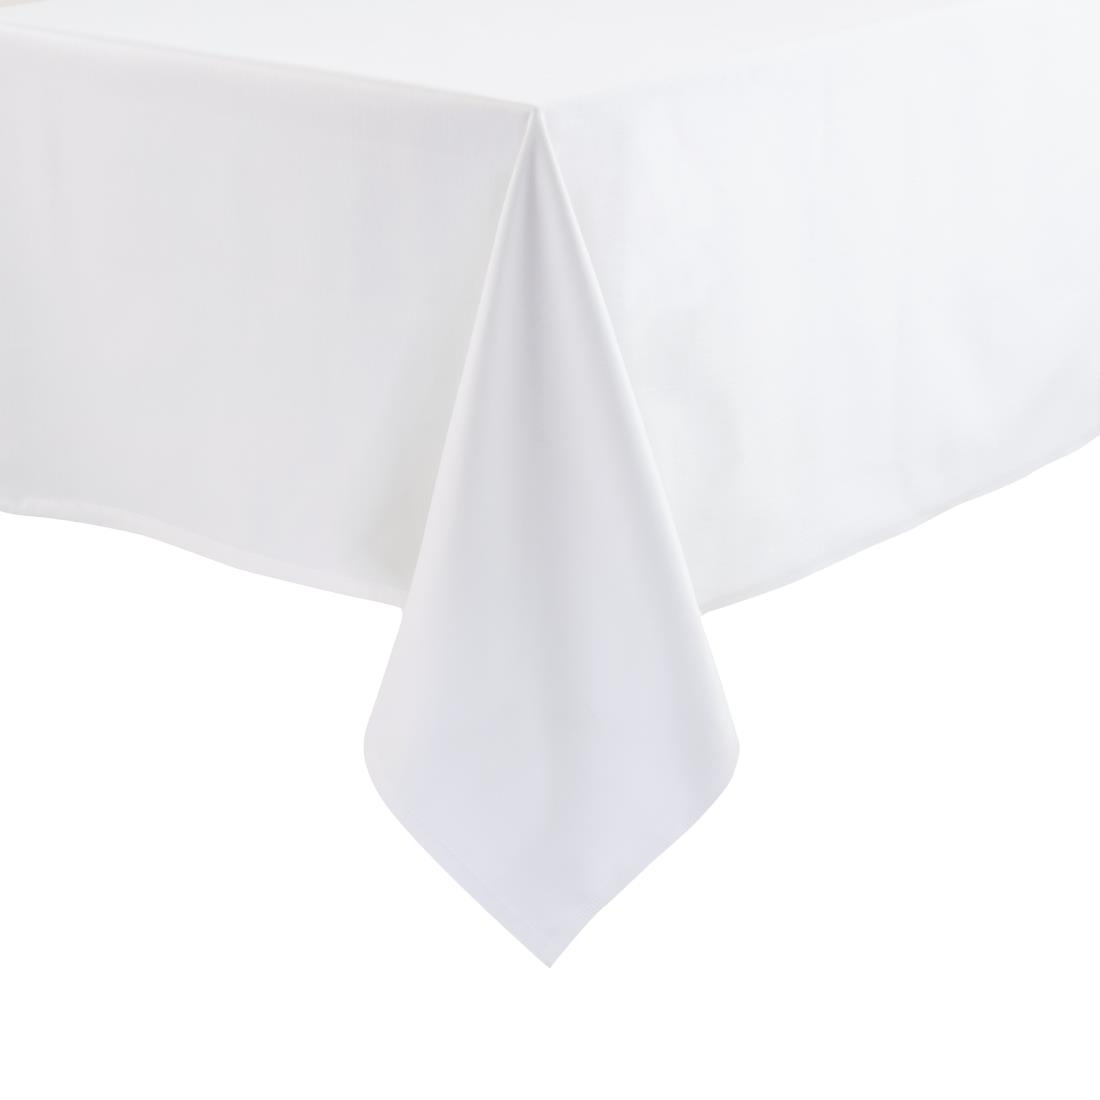 Image of Mitre Essentials Occasions Tablecloth White 1150 x 1150mm